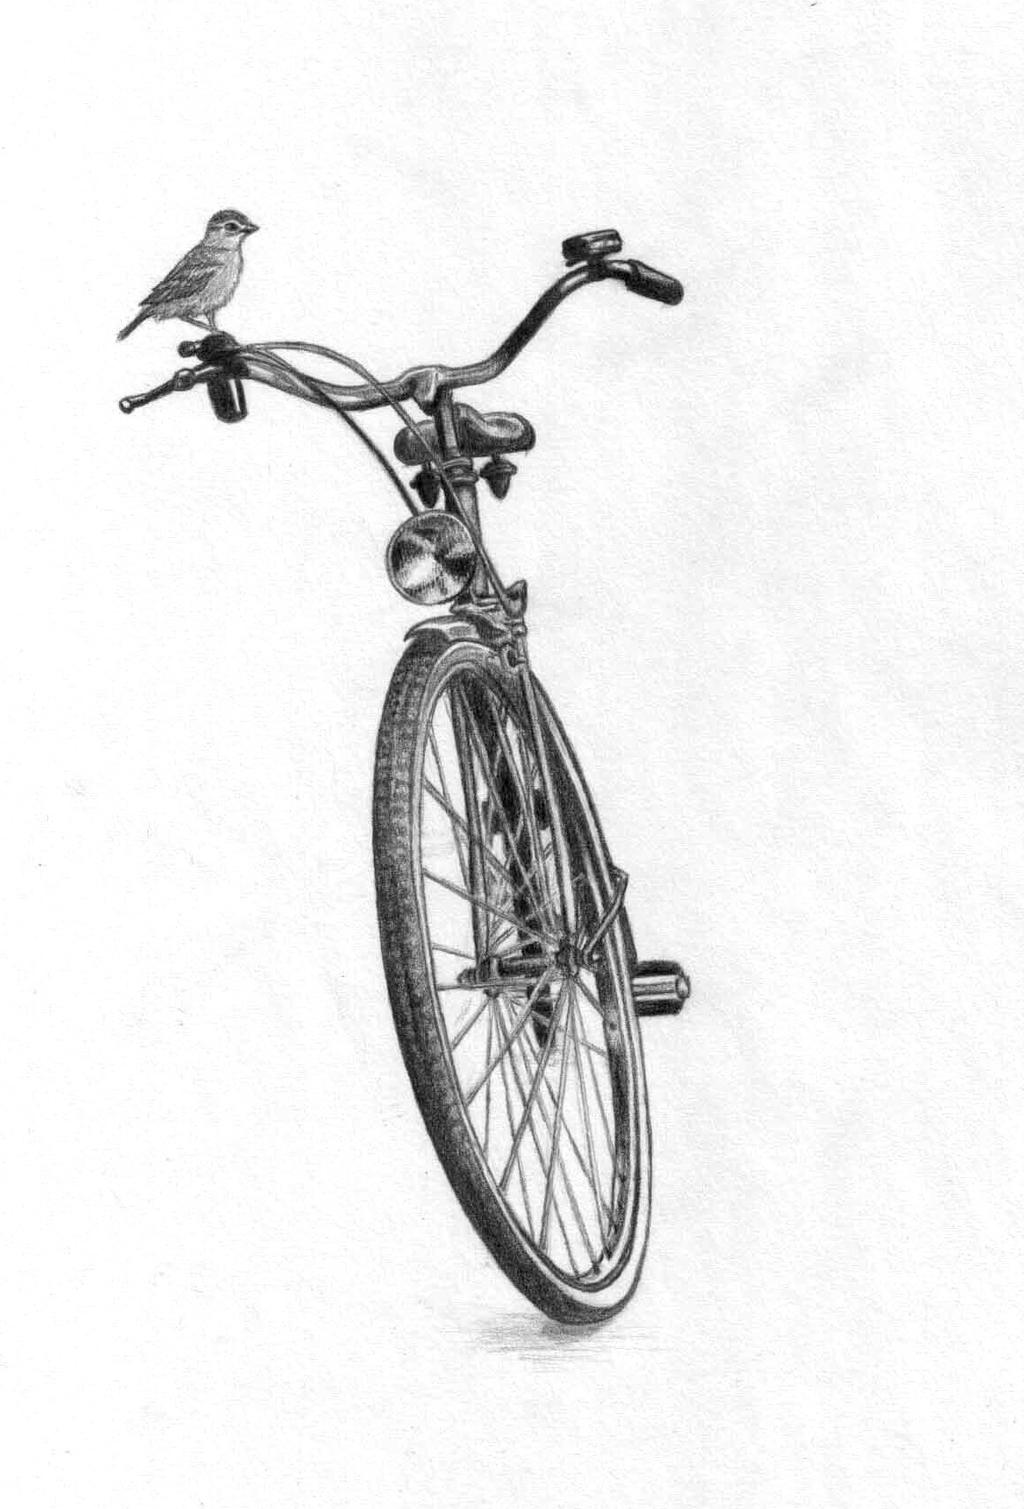 The bike and the bird by AlexLehner